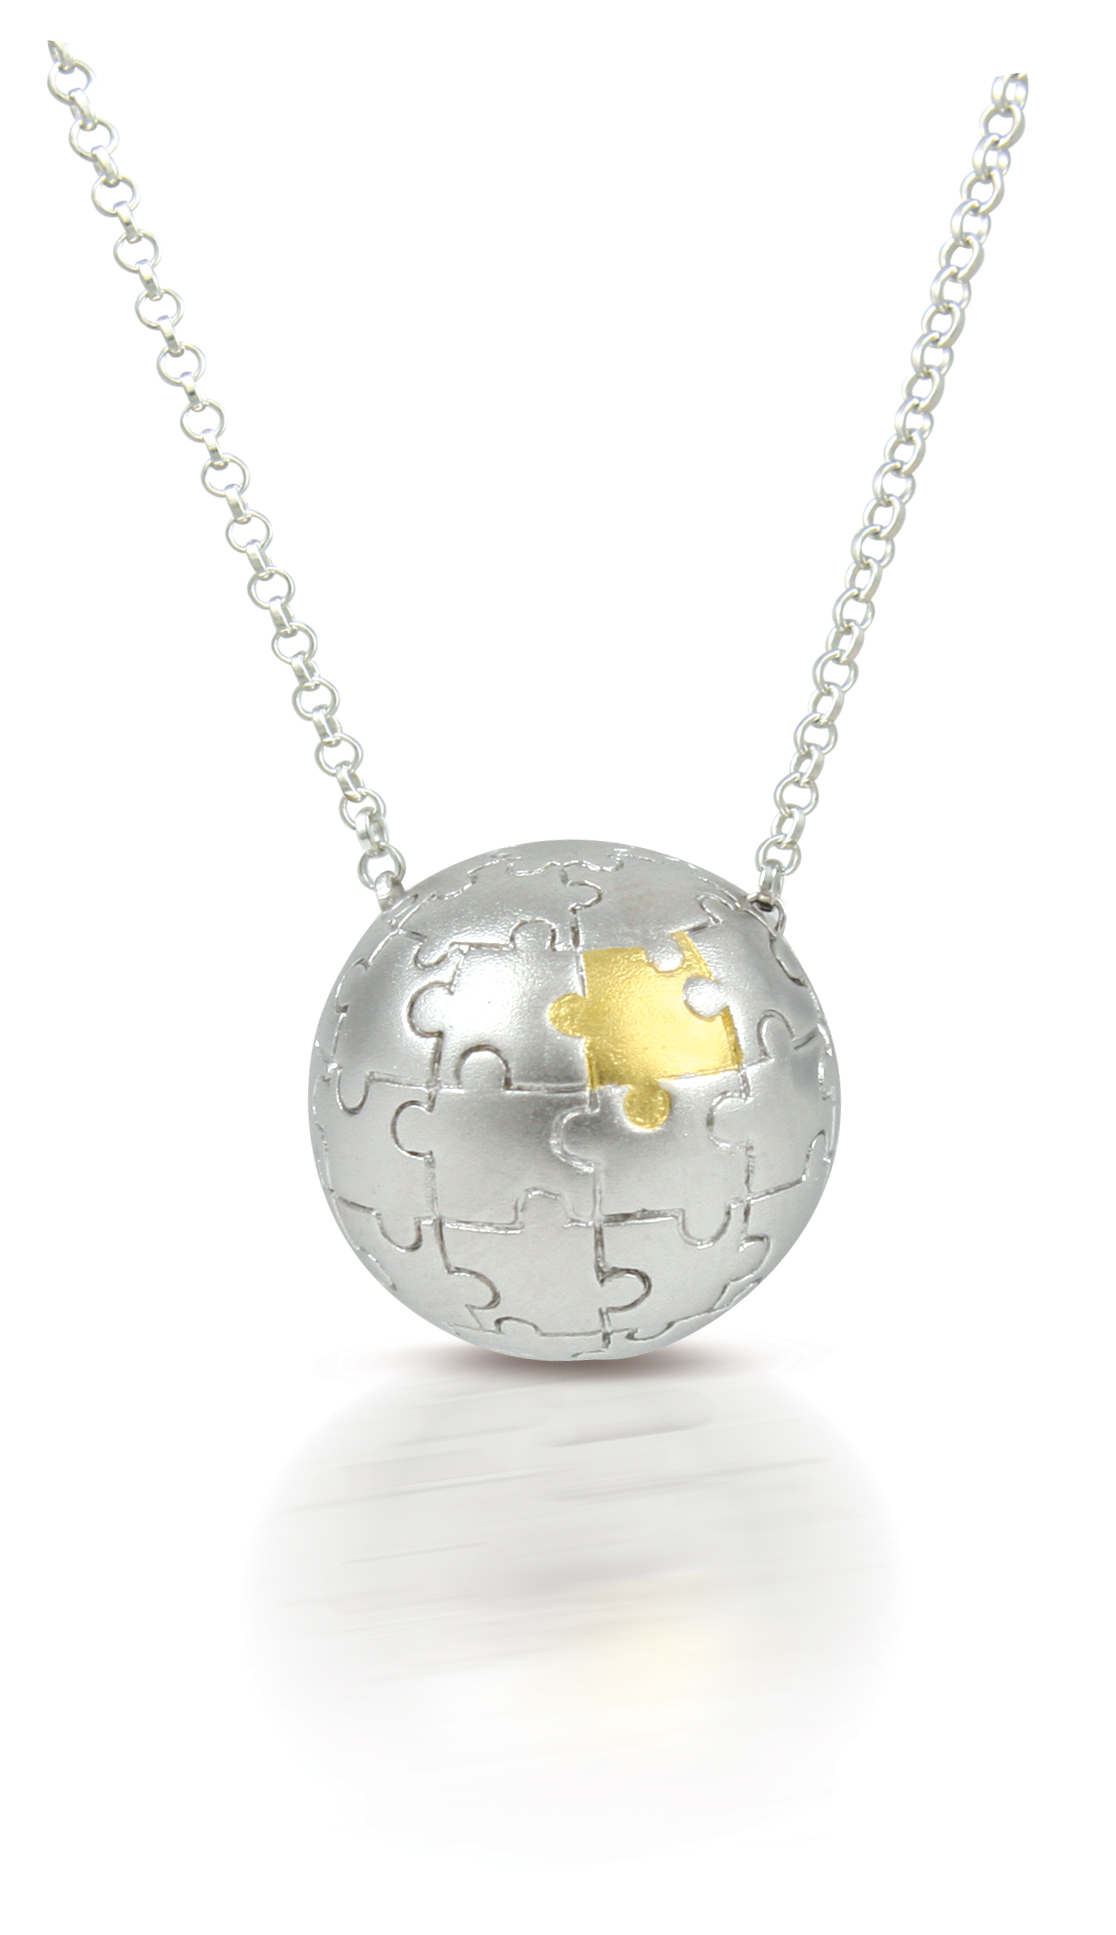 65691 - Sphere of Life 'My Missing Piece' Pendant in Sterling Silver